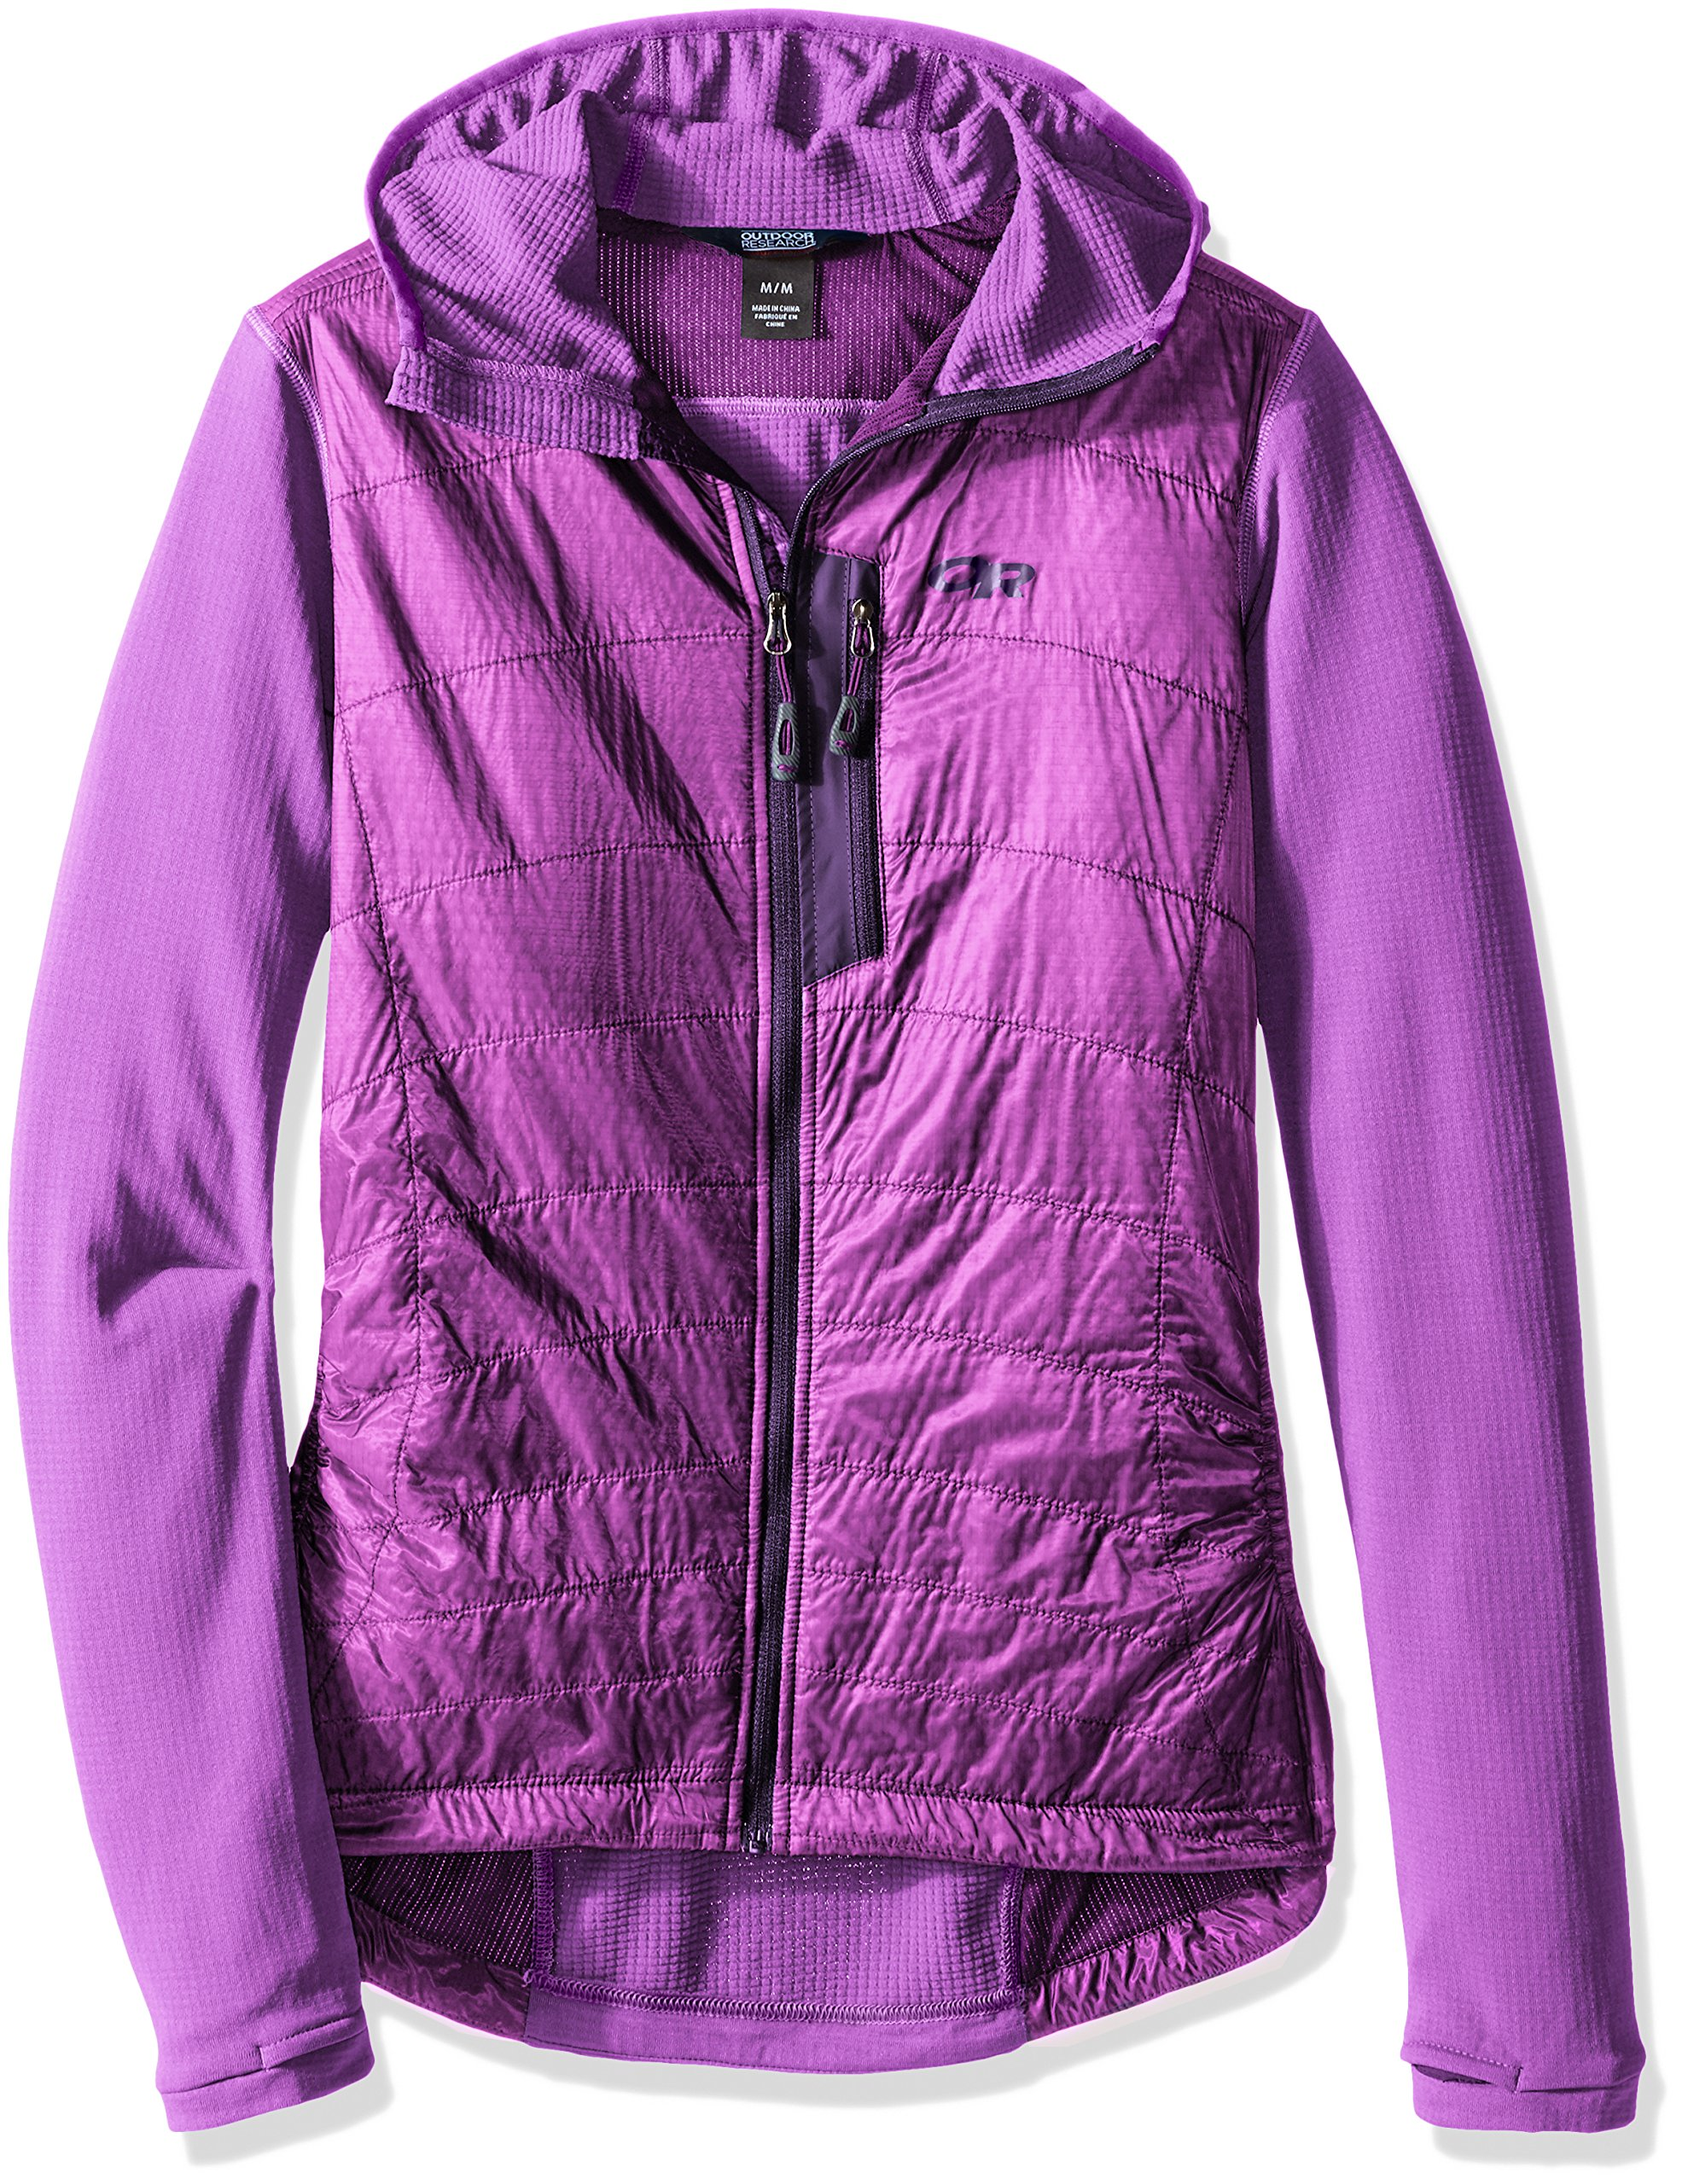 Outdoor Research Women's Deviator Hoody, Ultraviolet, X-Large